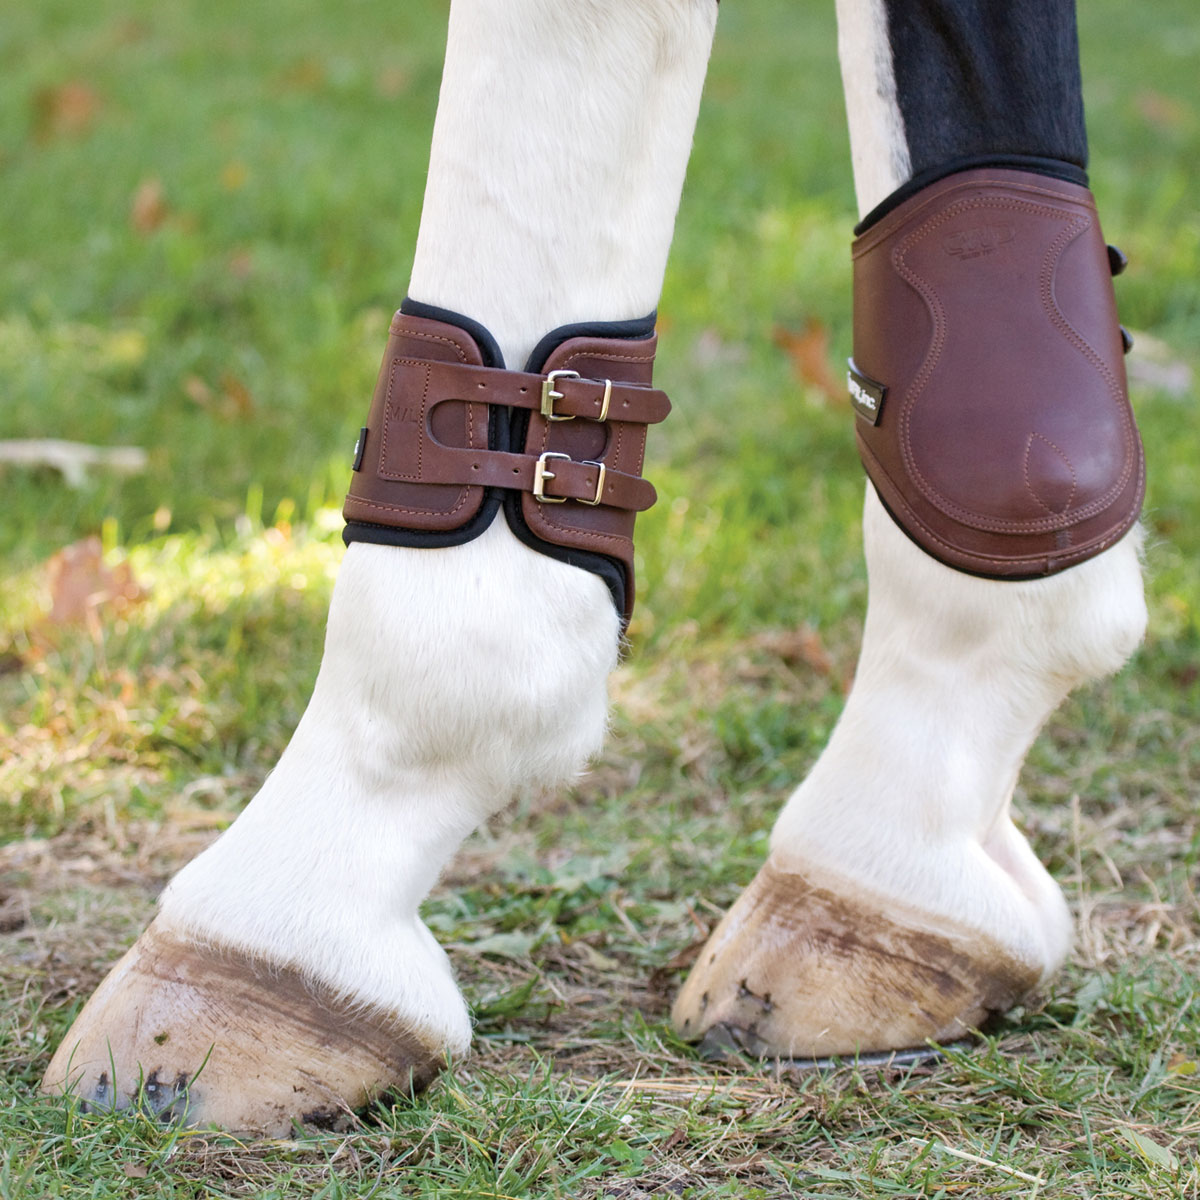 EquiFit T-Boot LUXE Hind Ankle Boots